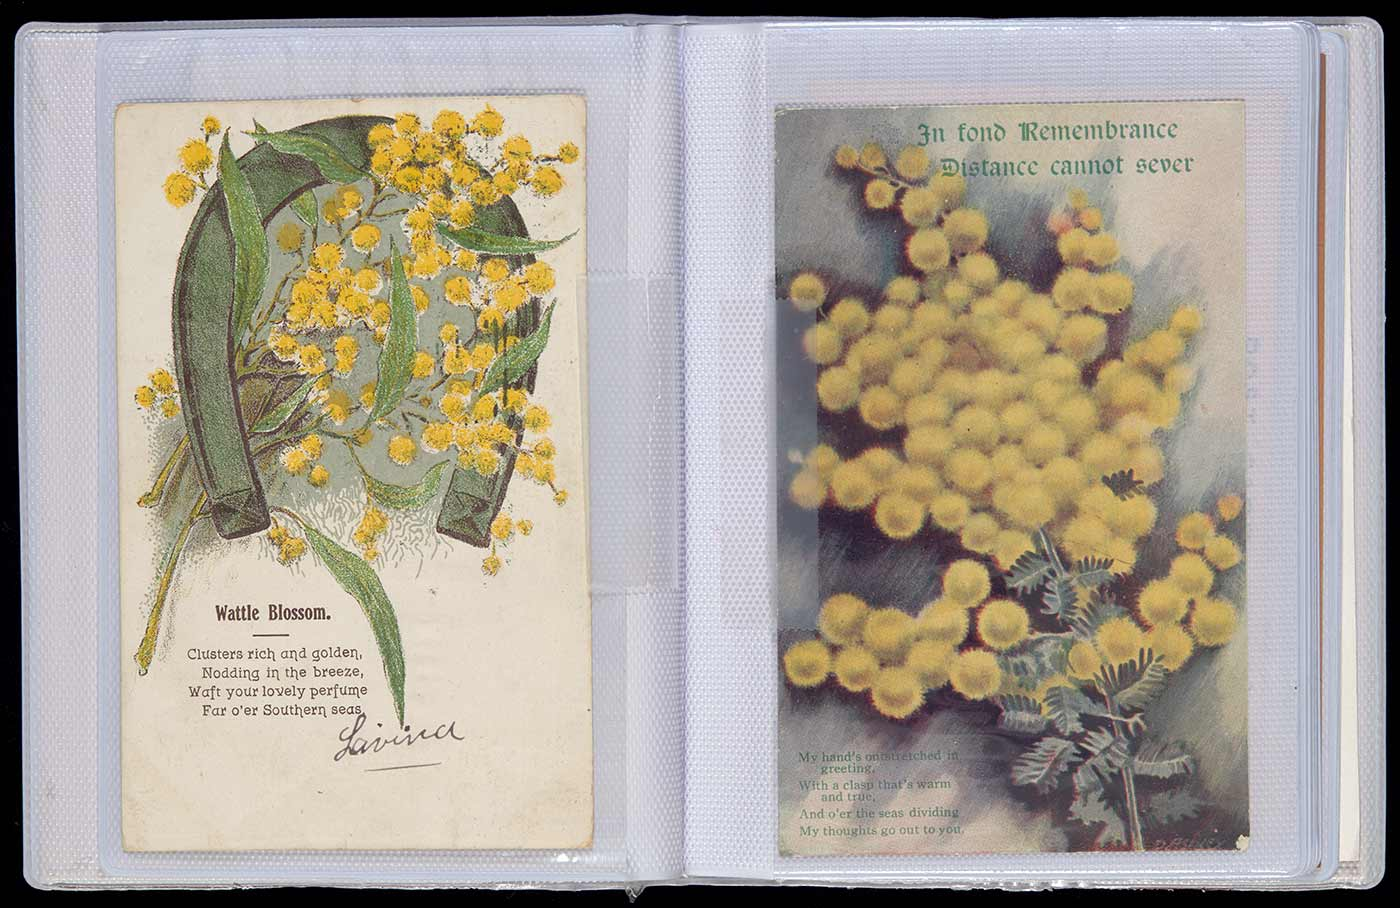 A small plastic photograph album containing cards relating to wattle. Attached to the front cover is a wattle painting on cardboard.